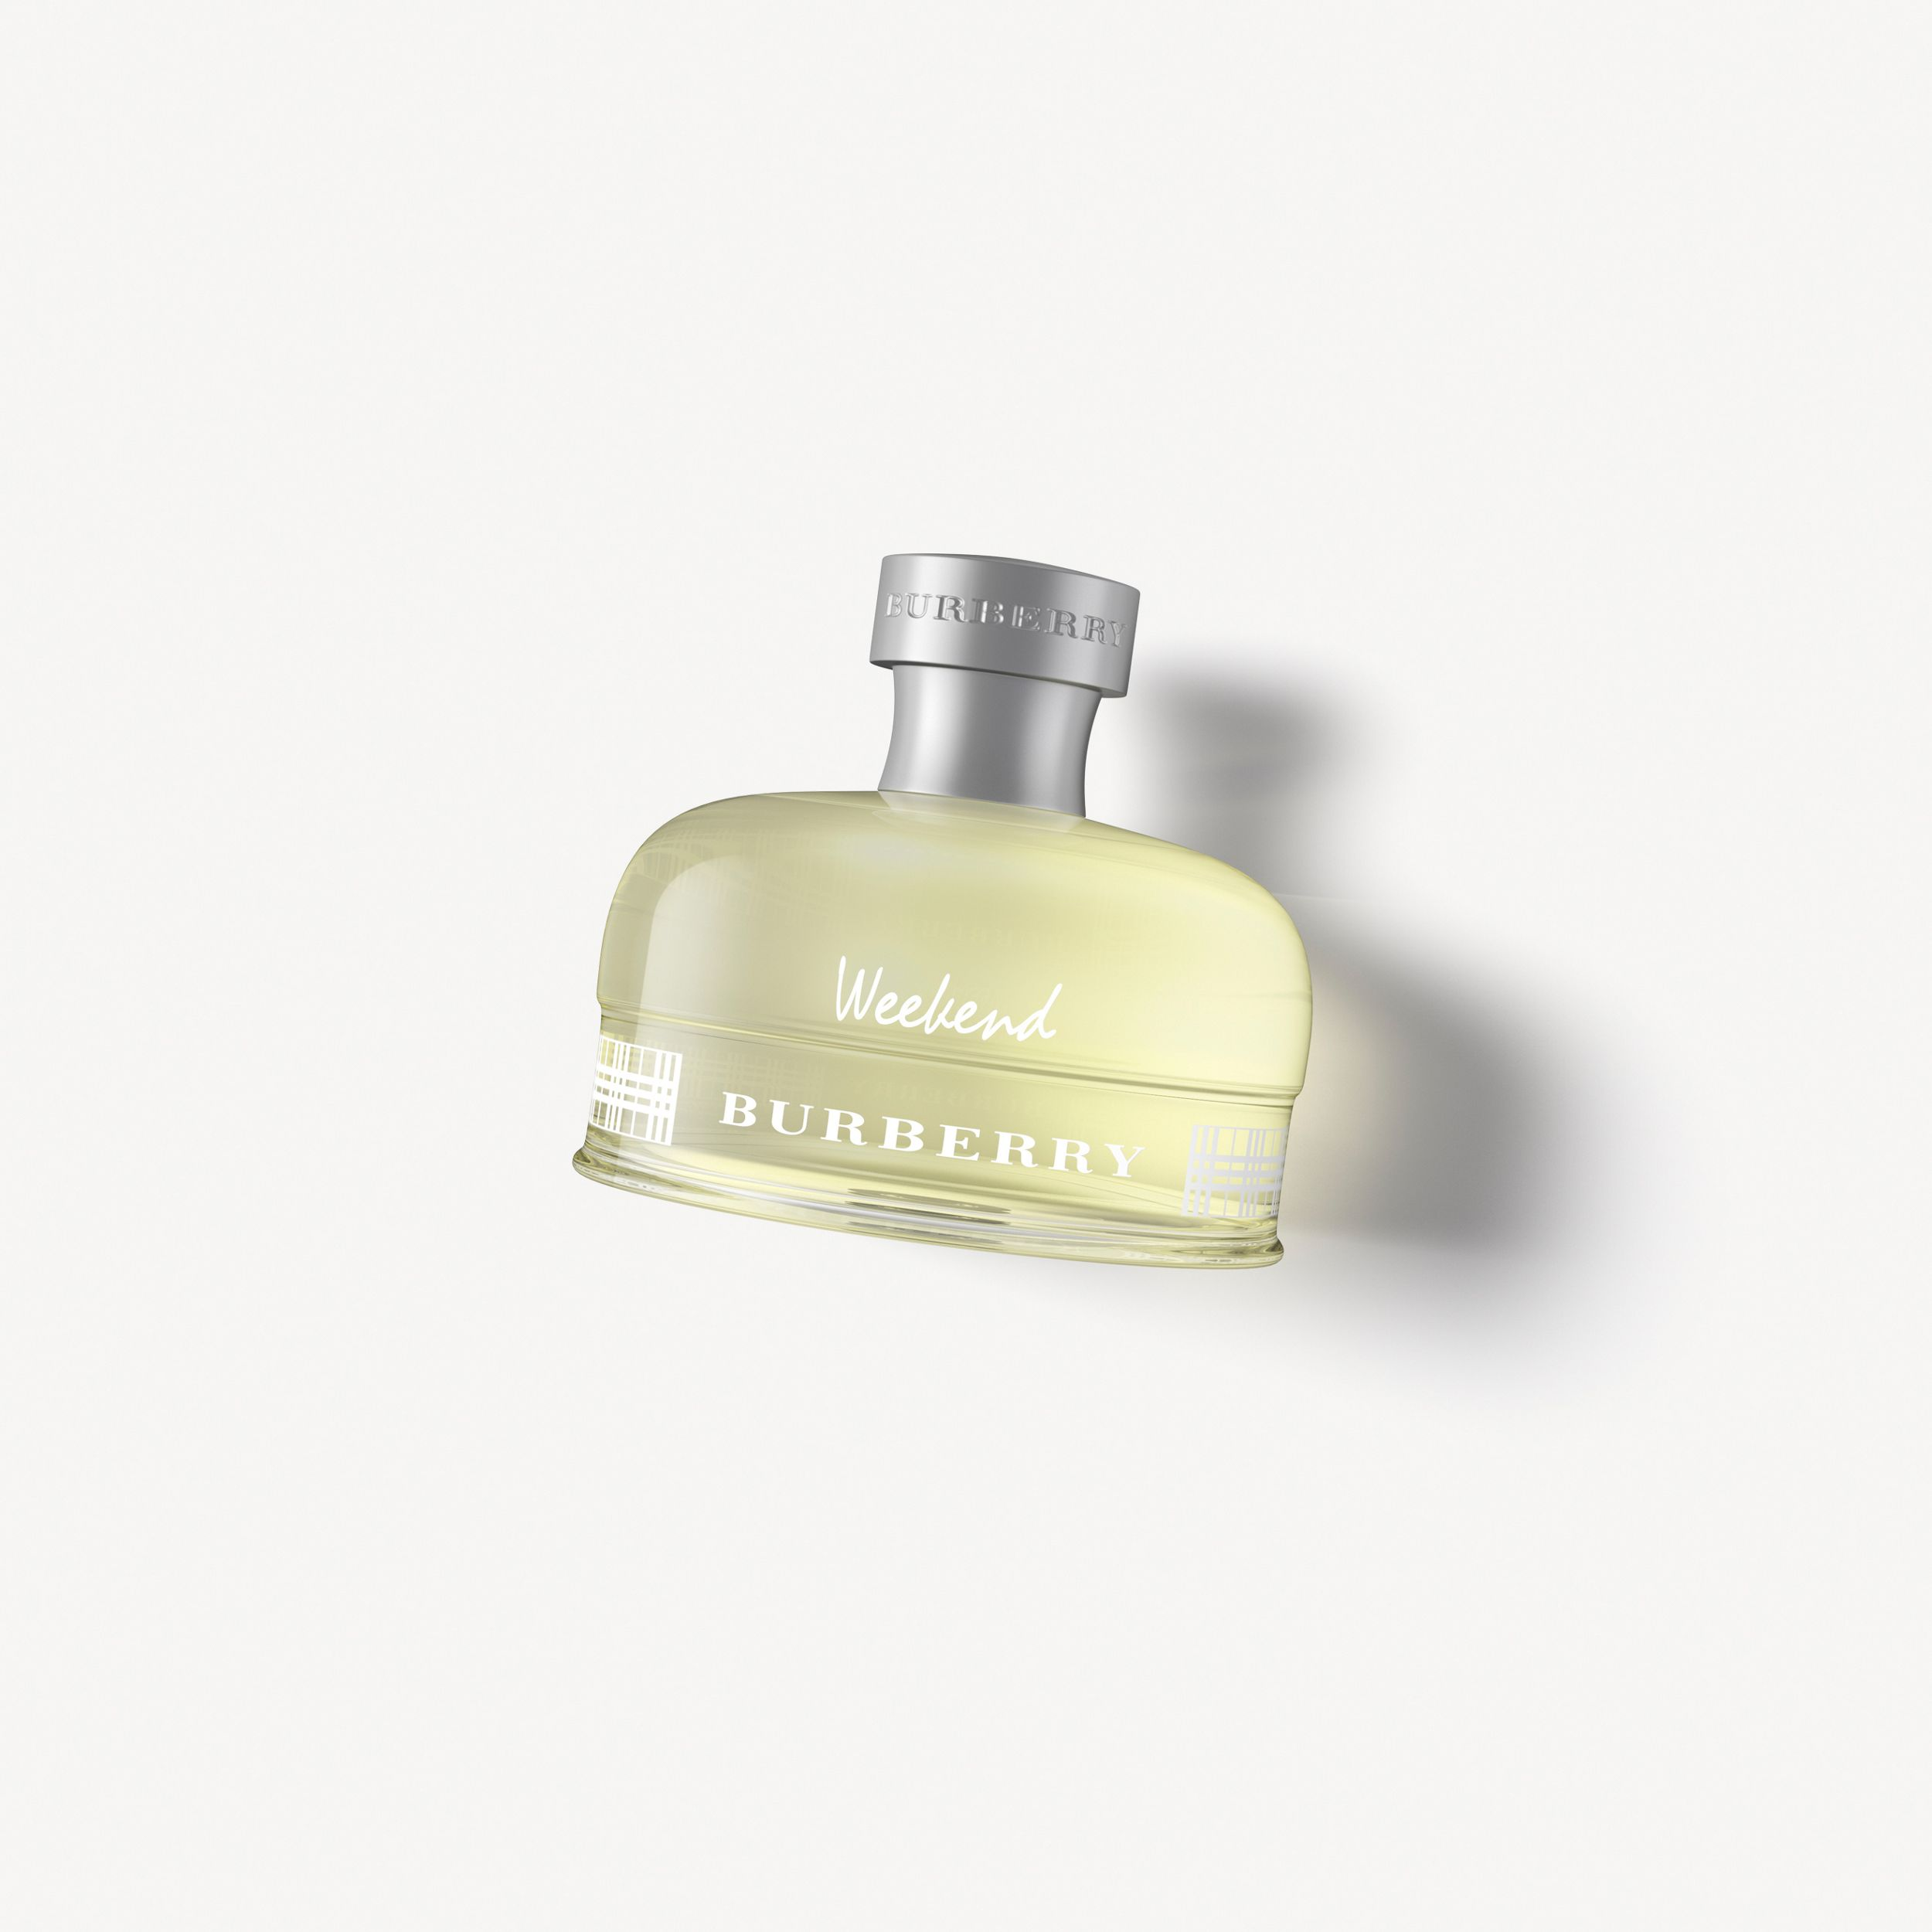 Burberry Weekend Eau de Parfum 100ml - Women | Burberry - 1